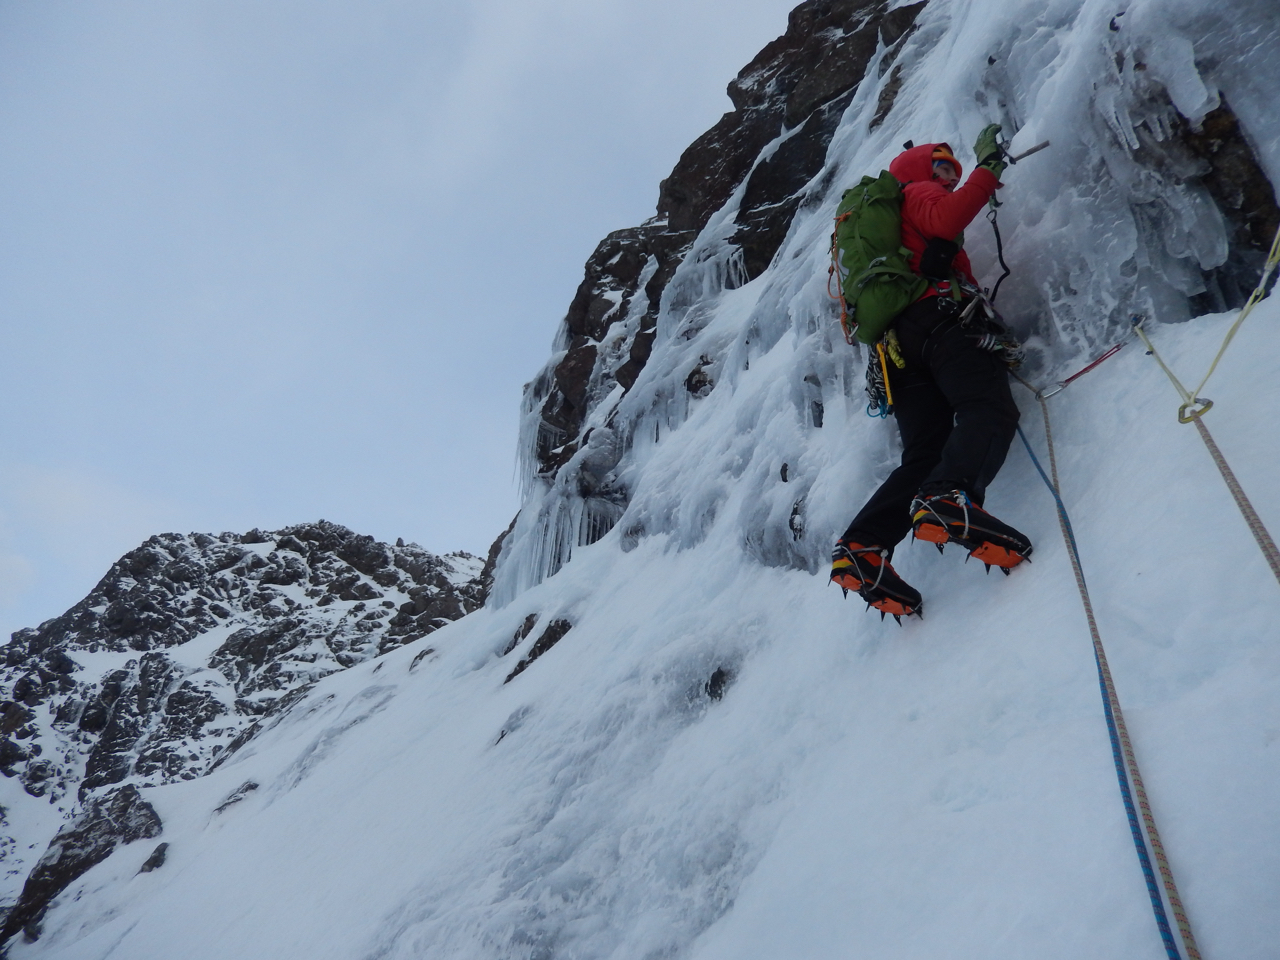 Joris on the initial steepening on the bold pitch 2